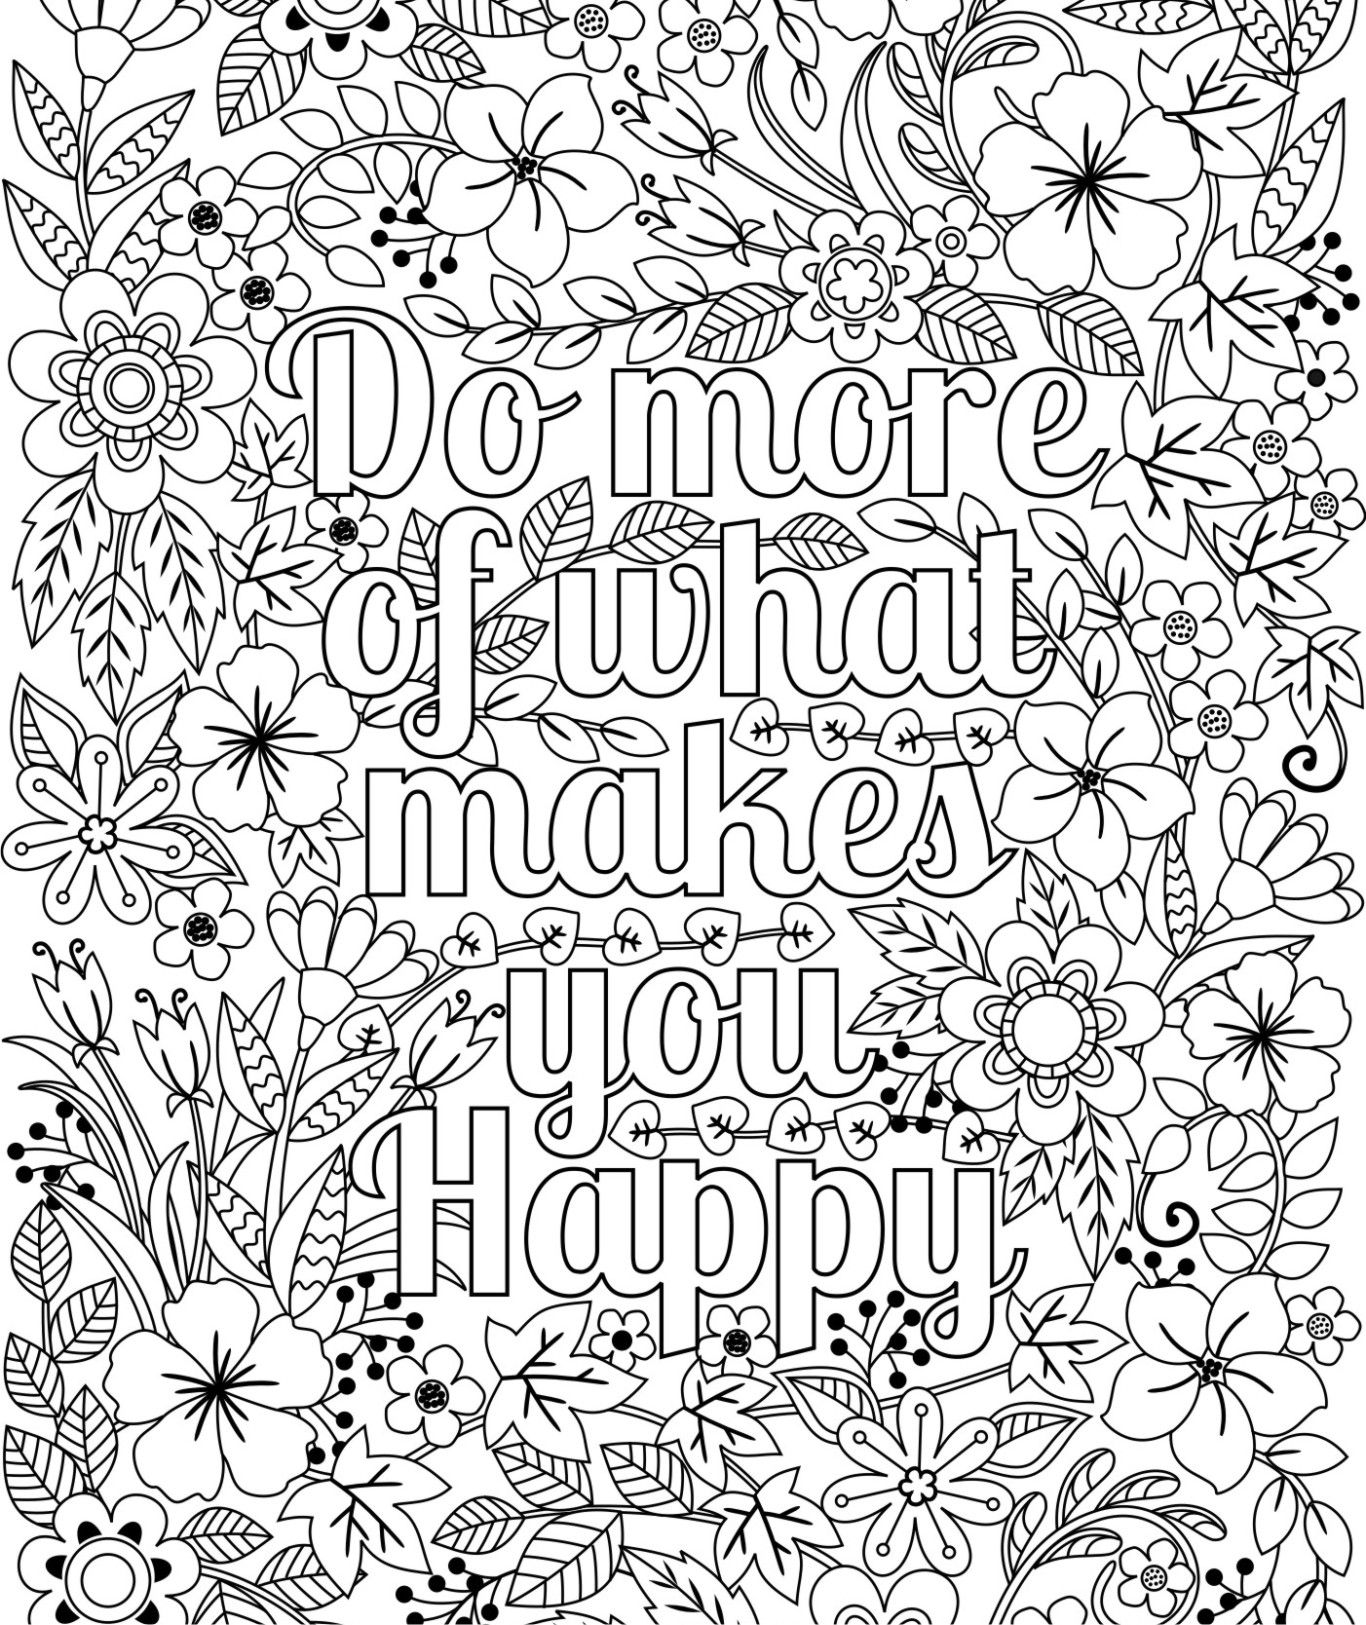 Lotus designs coloring book - Printable Do More Of What Makes You Happy Flower Design Coloring Page